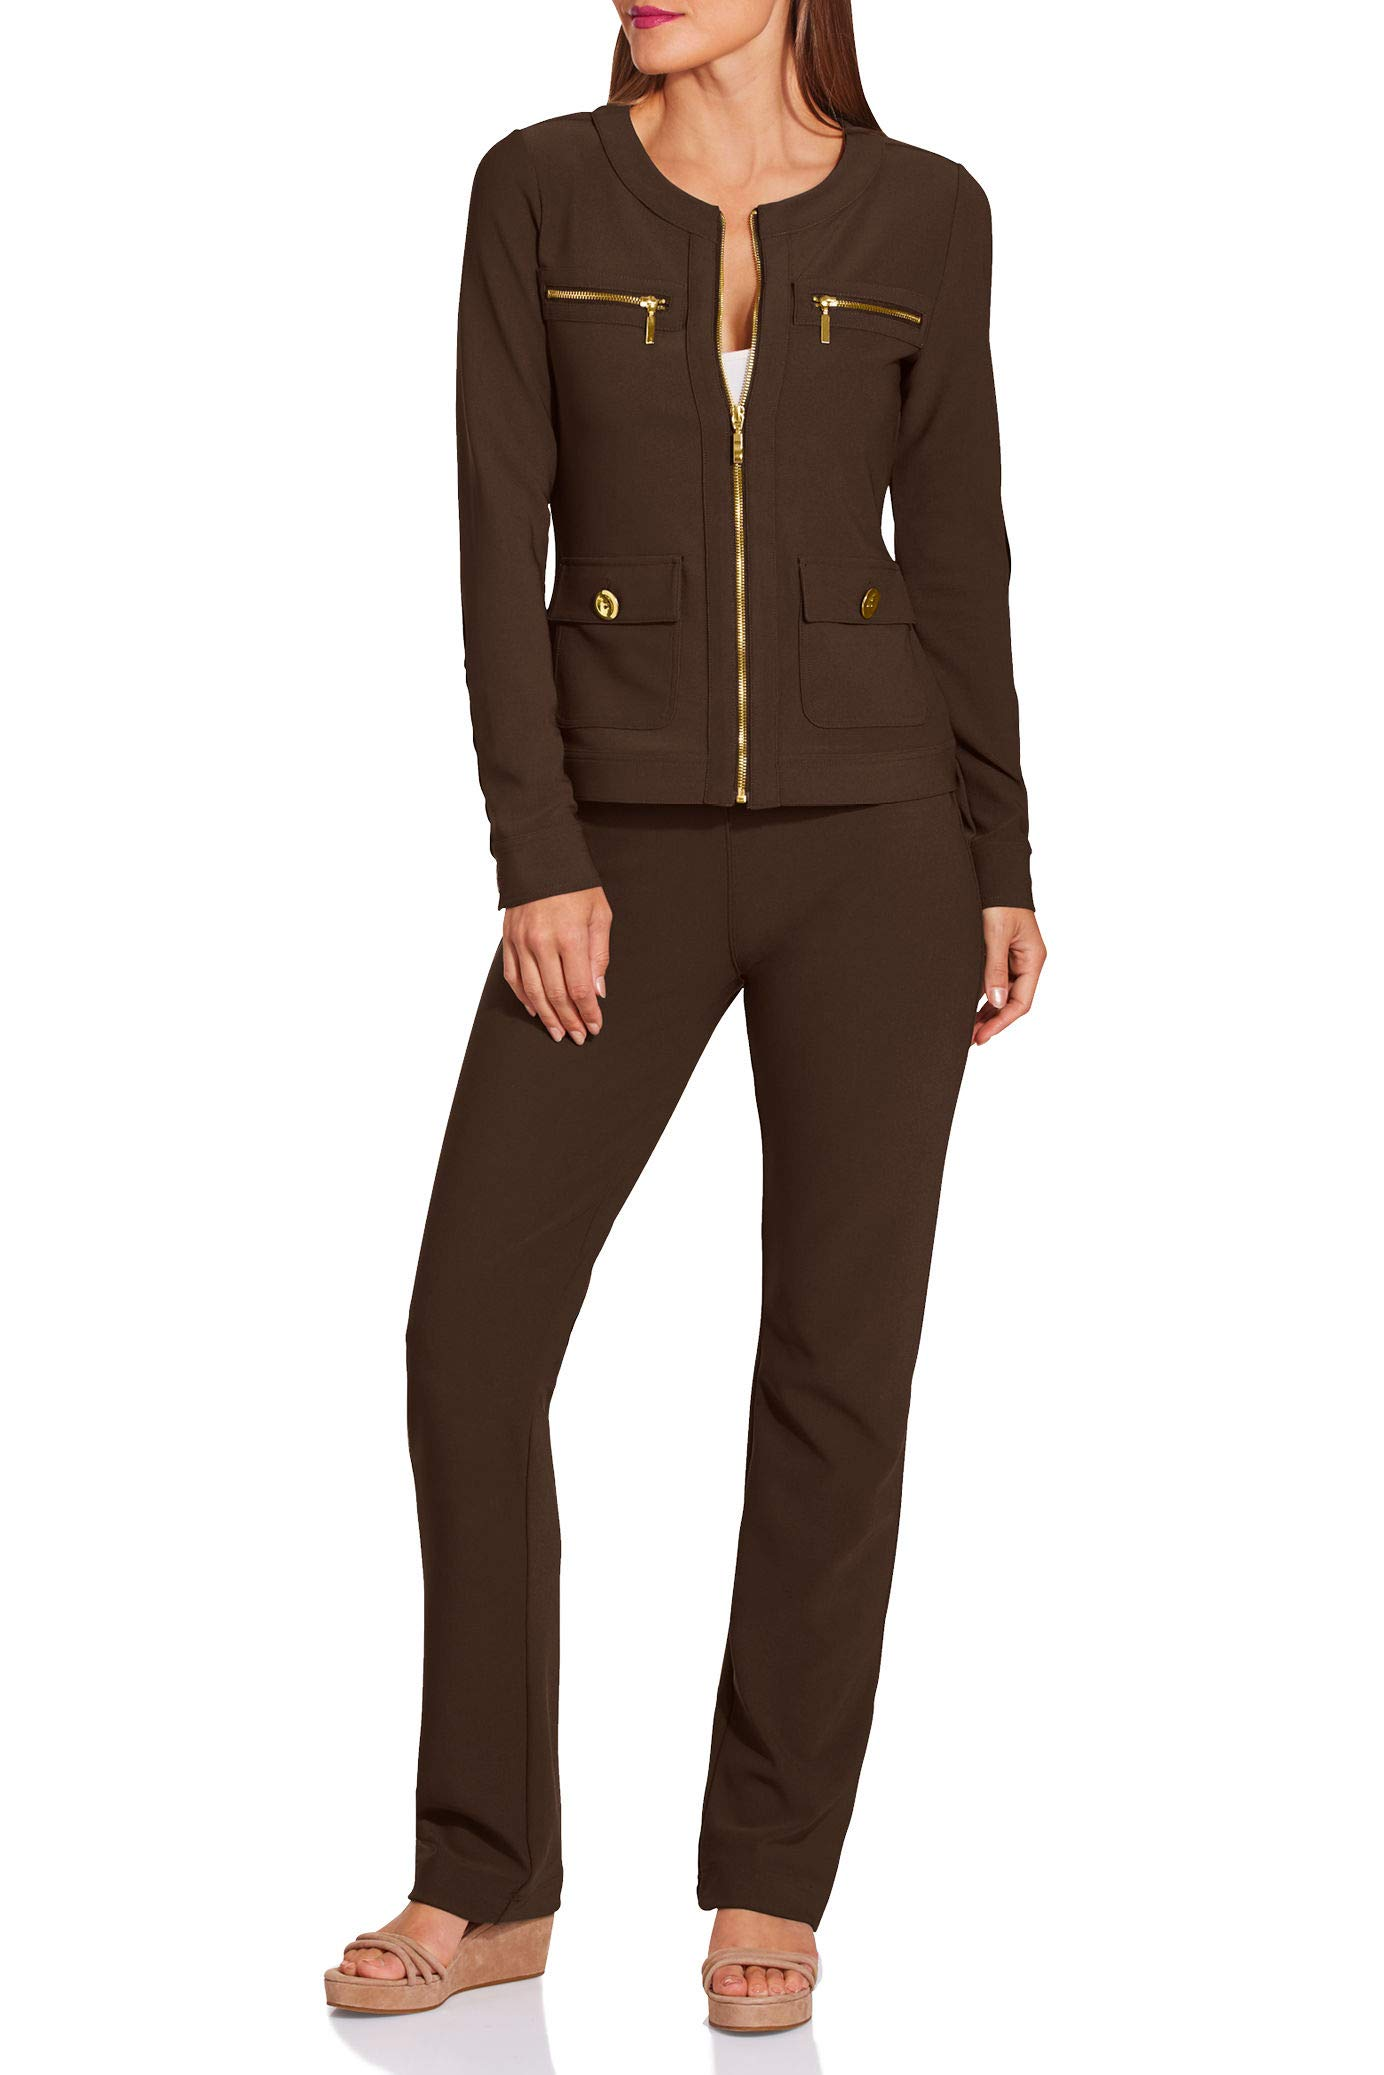 Boston Proper Women's Wrinkle-Resistant Solid Color Chic Two-Piece Knit Set Safari Brown X Large by Boston Proper